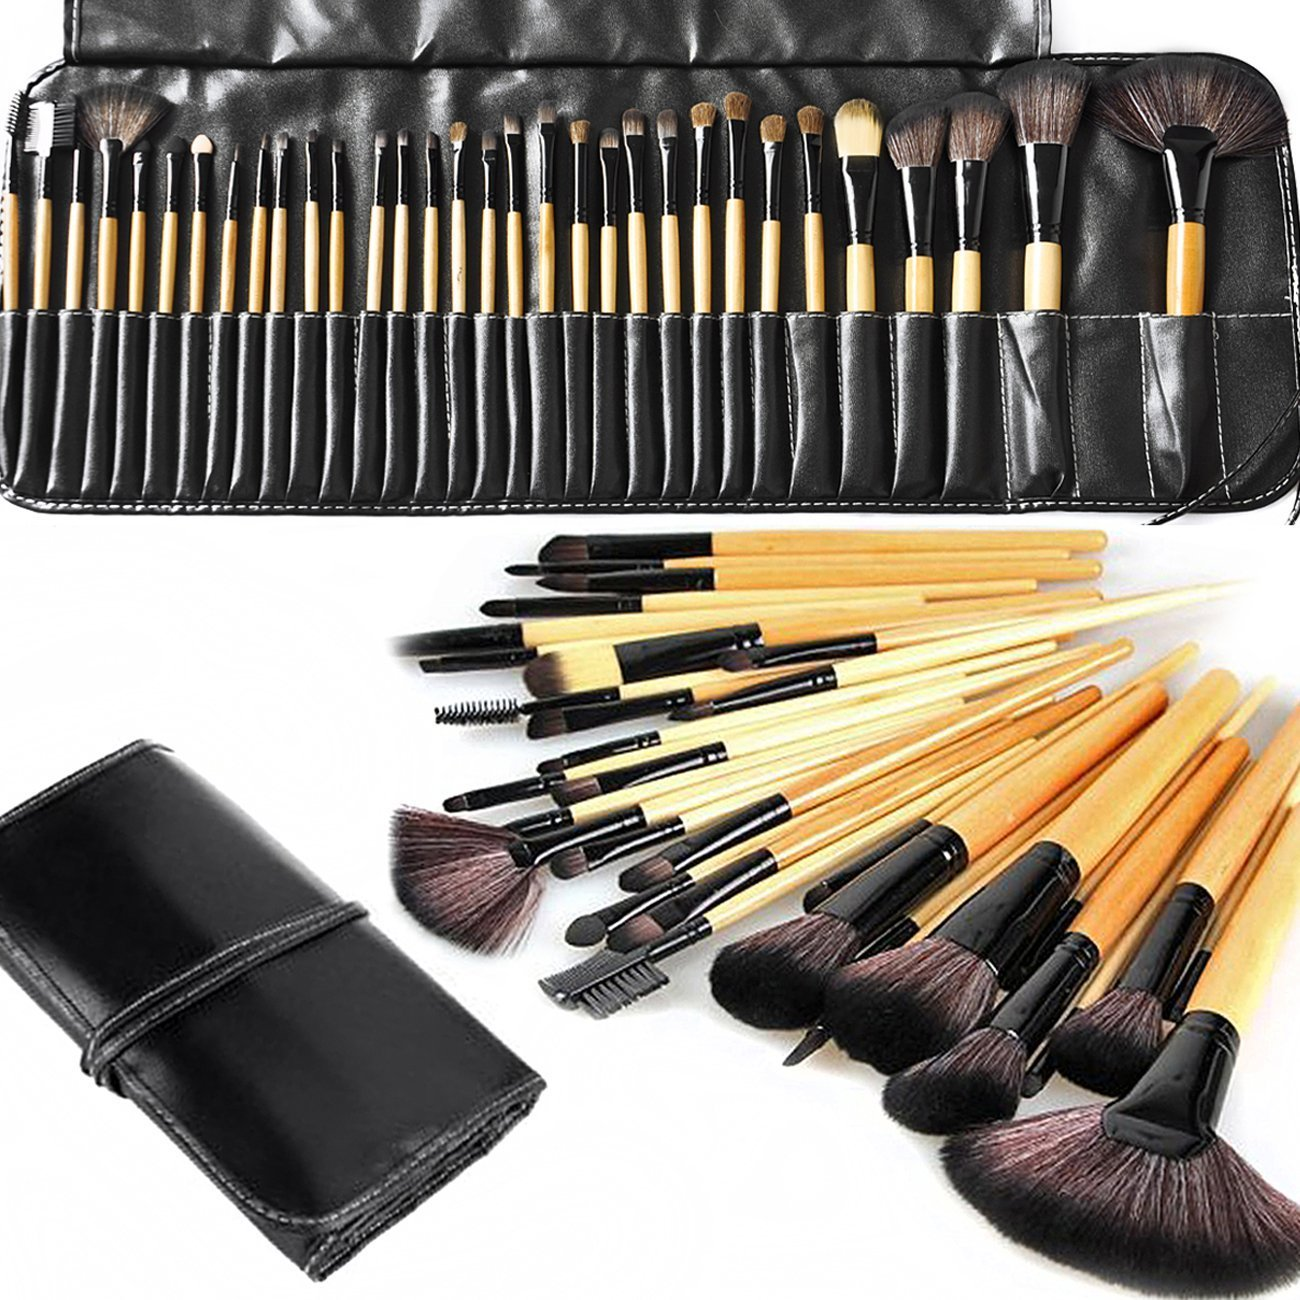 Black Label Beauty Makeup Brush Set for Cream Liquid and Mineral Foundation (32pcs) Wood Makeup Brushes with Vegan Leather Case